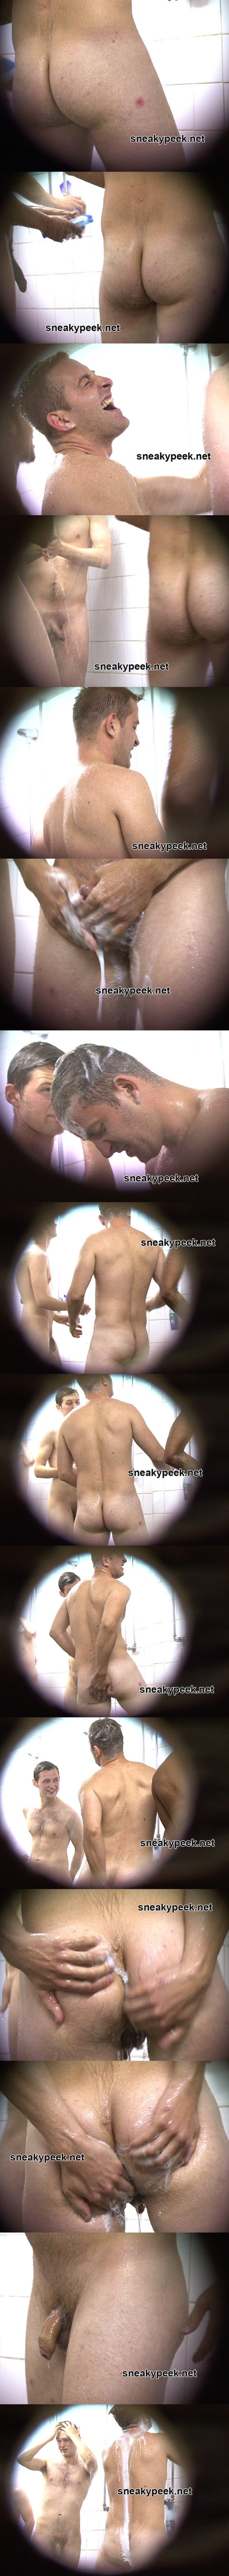 spy on naked guys shower sneaky peek